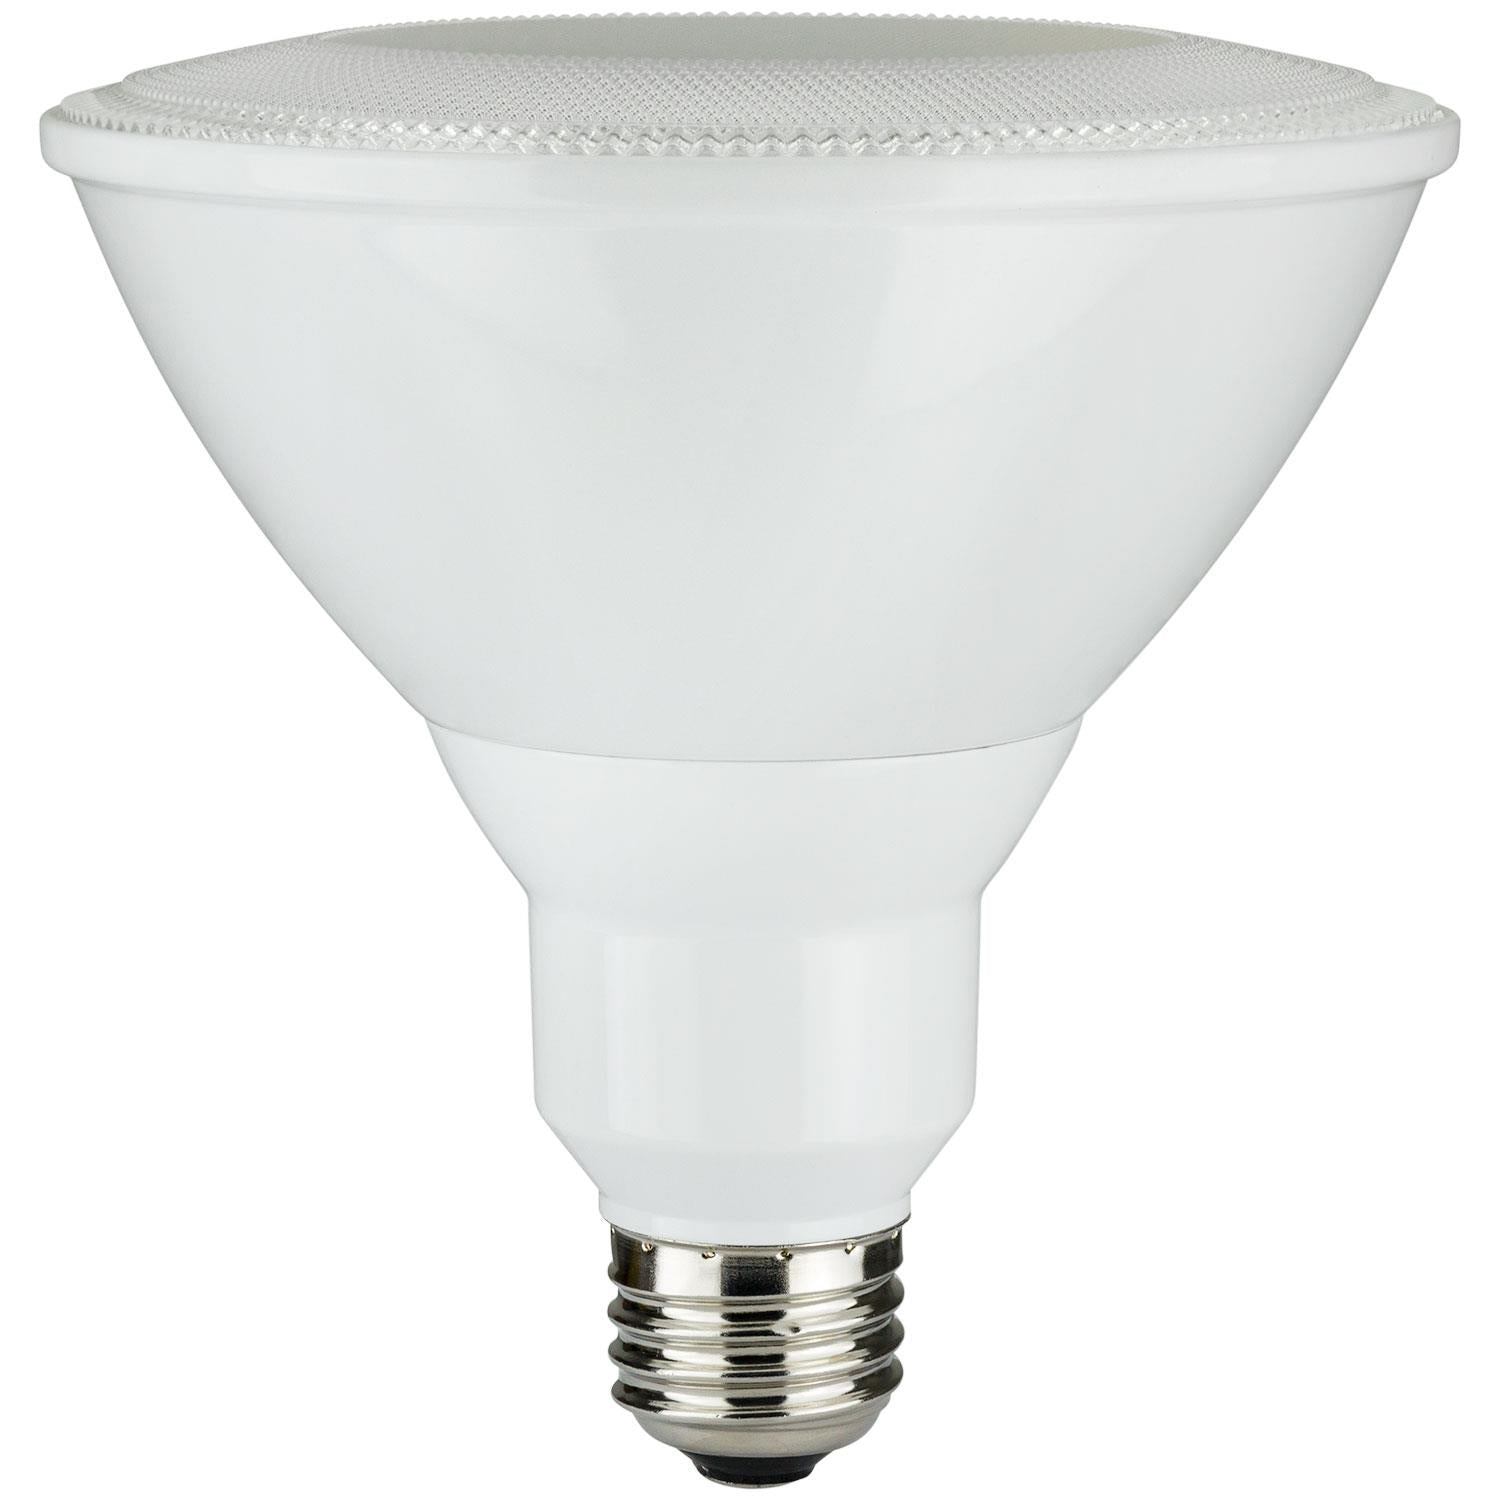 Sunlite 88326-SU LED 18w PAR38 3000K Warm White Flood 40 Light Bulb